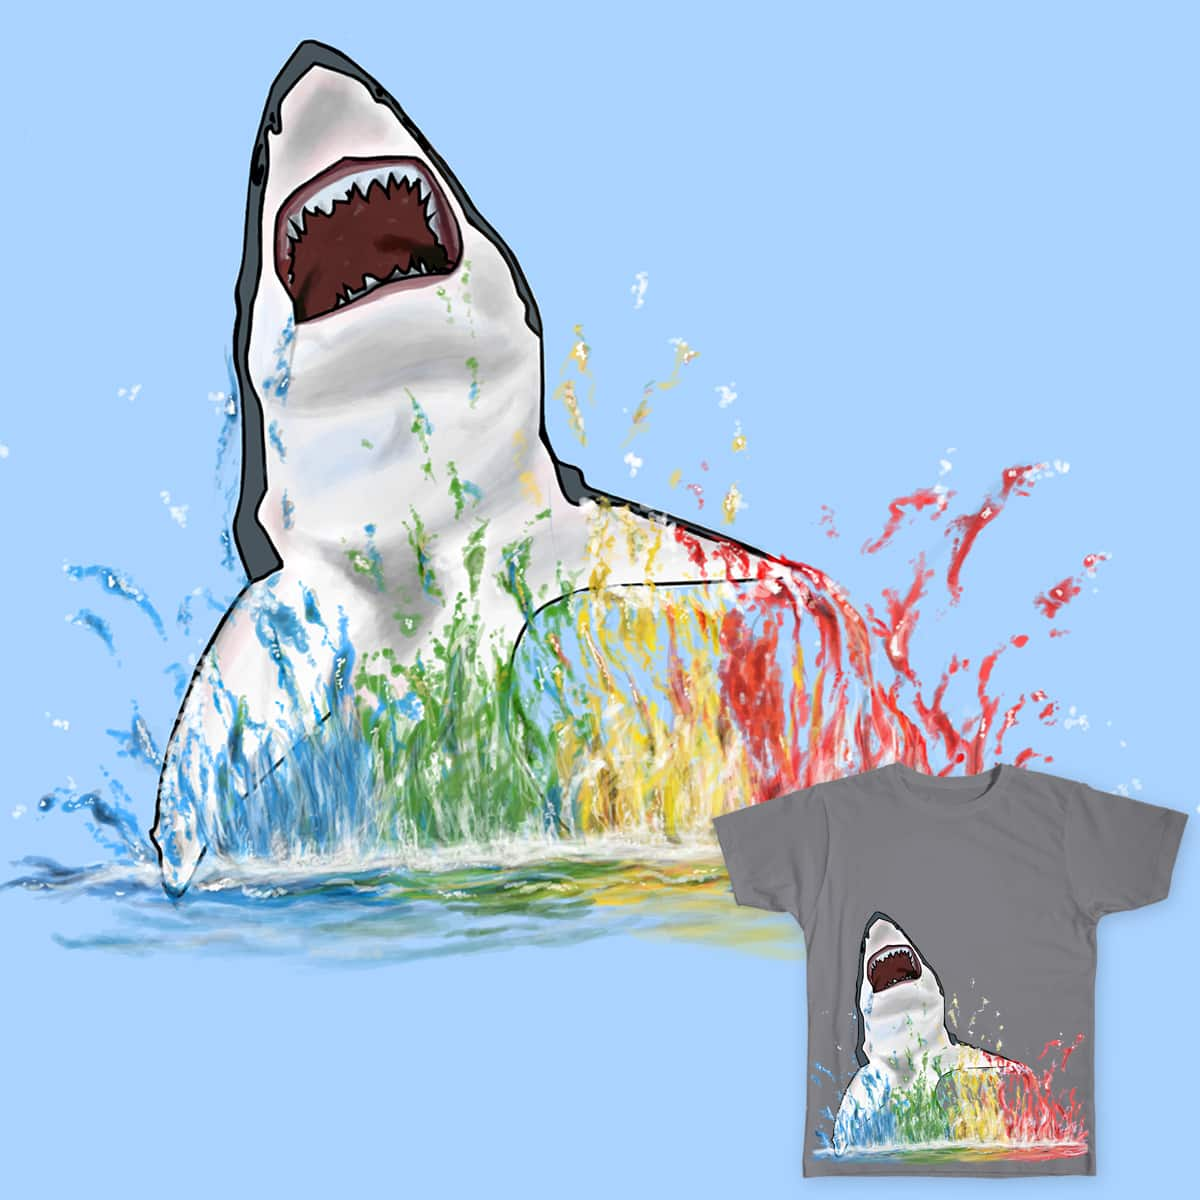 Rainbow Splash by ungsarthur on Threadless